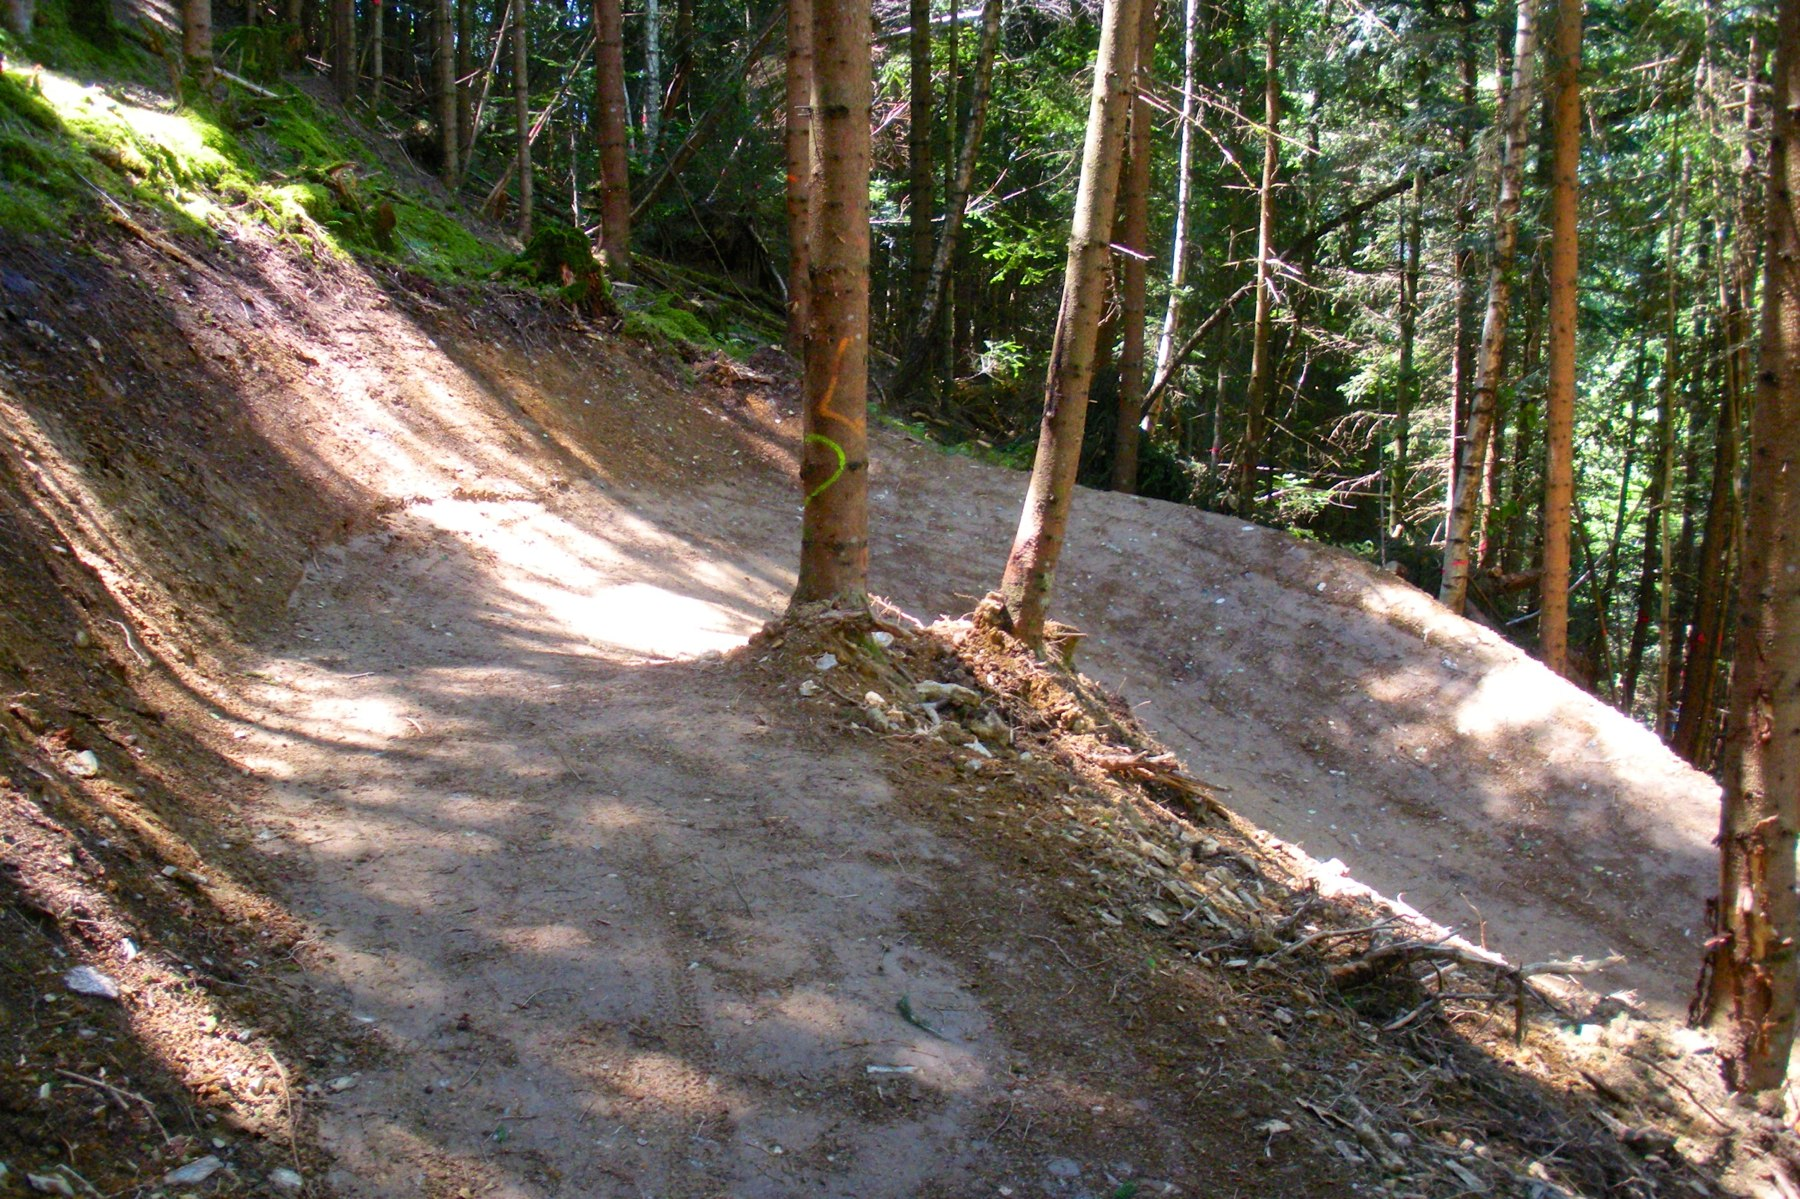 rideable_trailbuilding_flow_one 15.jpg